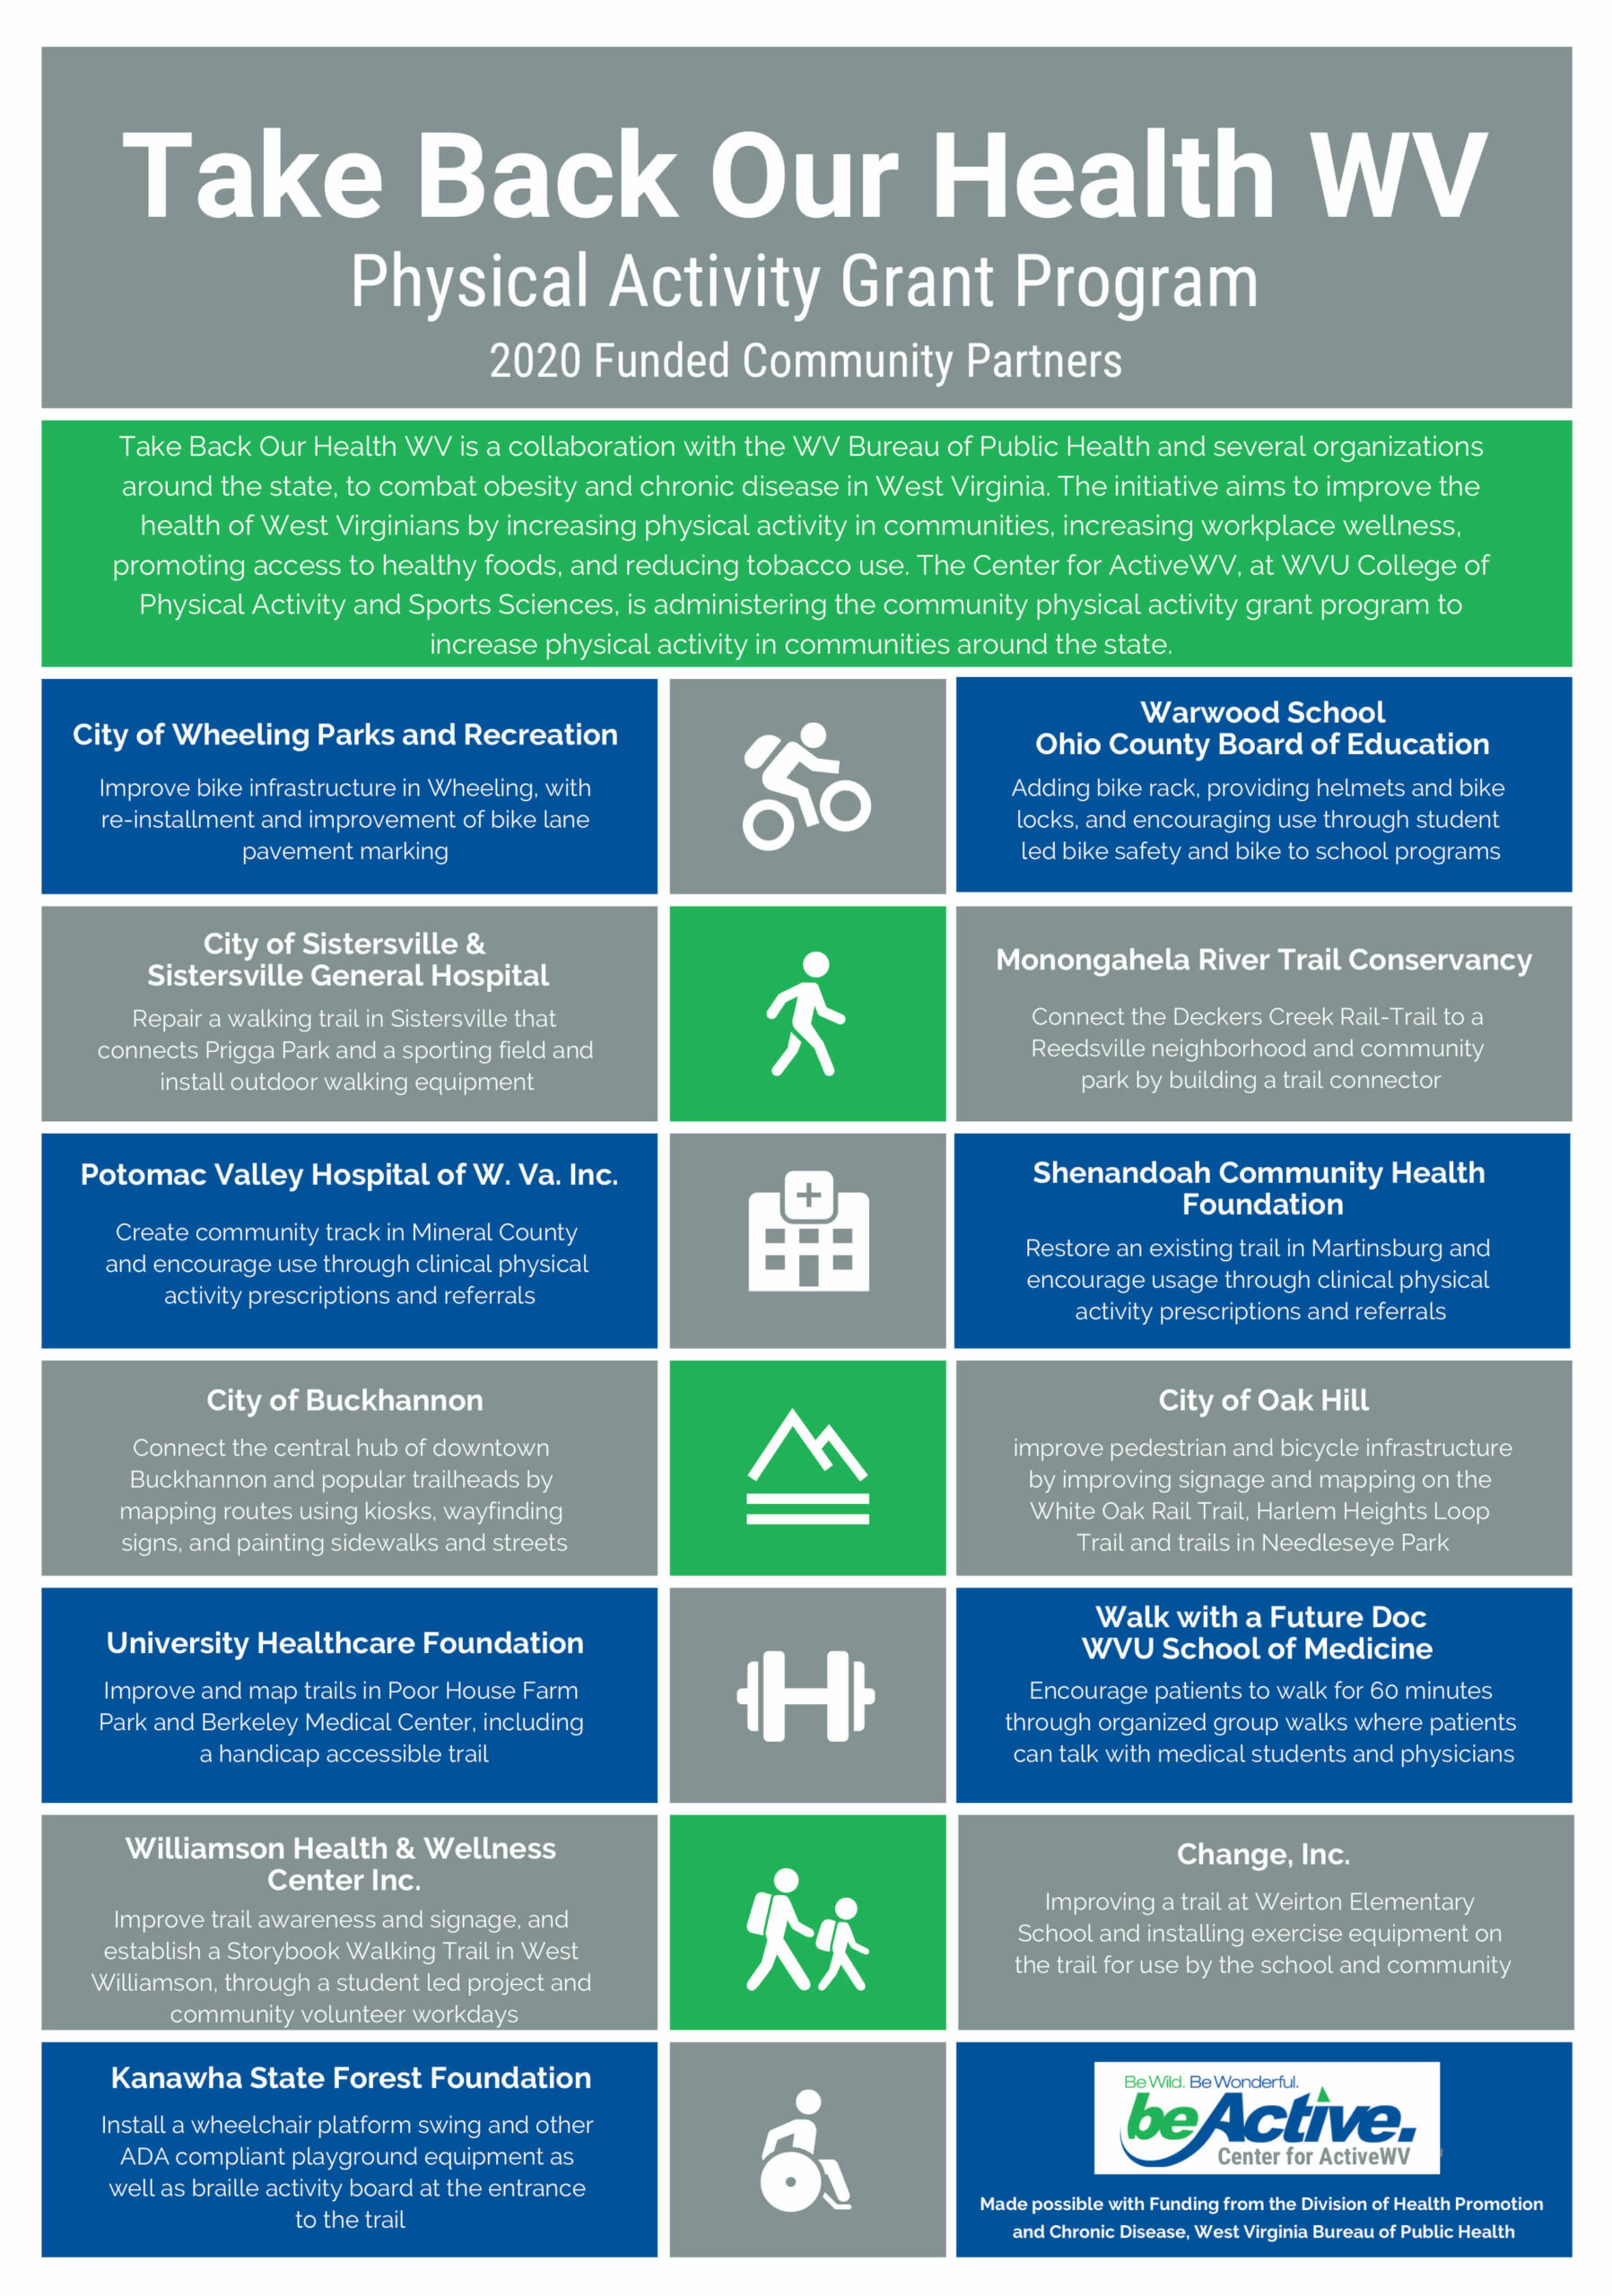 This is a Take Back Our Health Infographic with information on the Physical Activity Grant Program and 2020 Funded Community Partners.